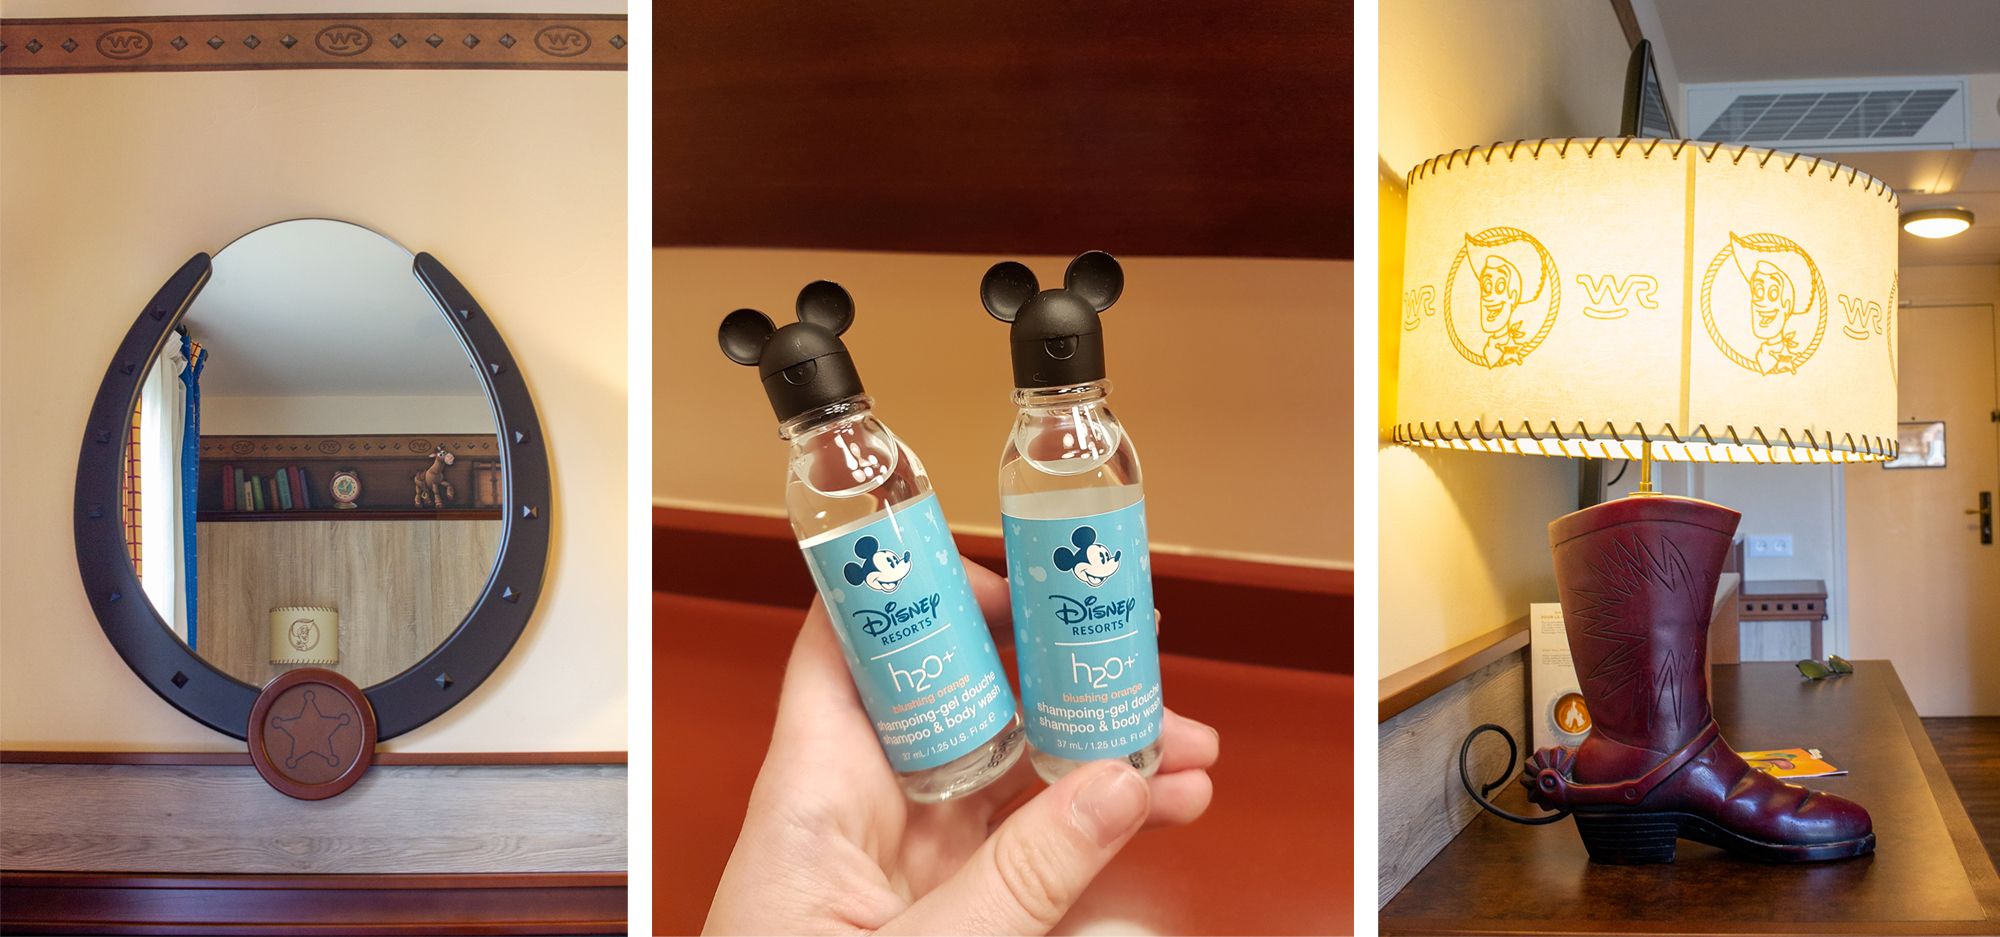 Horse shoe styled mirror, mickey mouse shower gel and a cowboy boot shaped lamp. | Staying at Hotel Cheyenne in Disneyland Paris